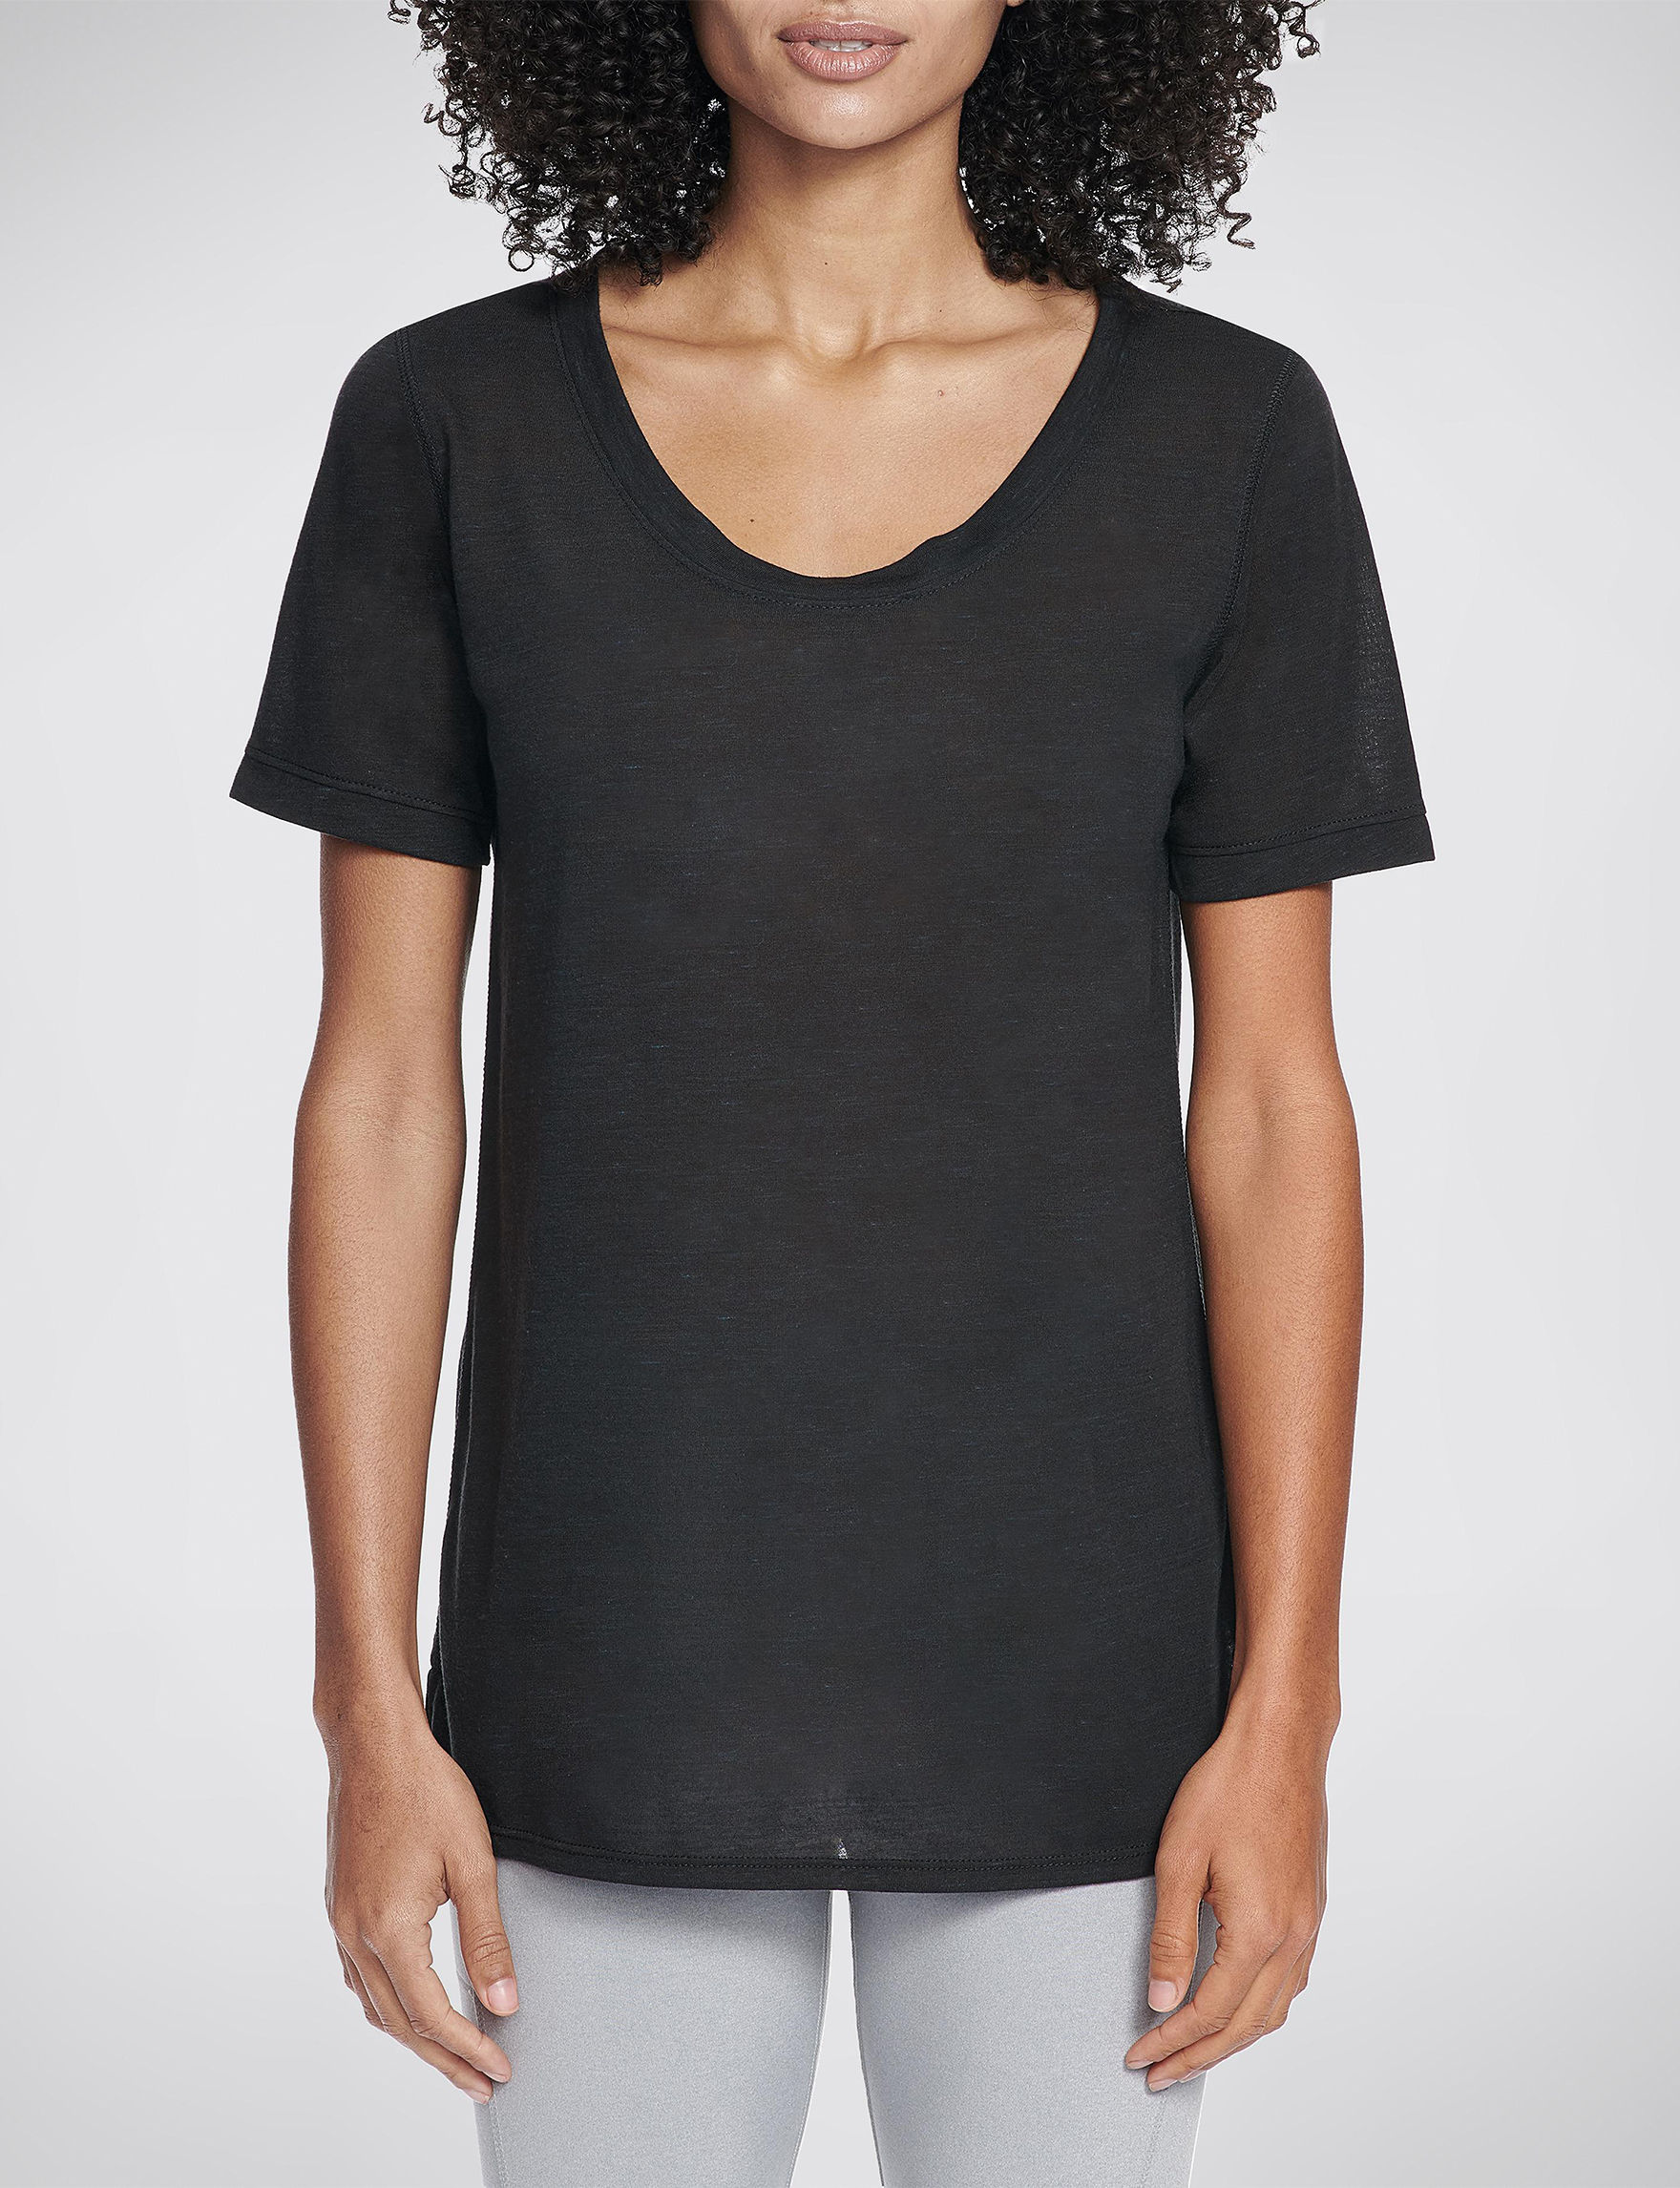 Skechers Black Tees & Tanks